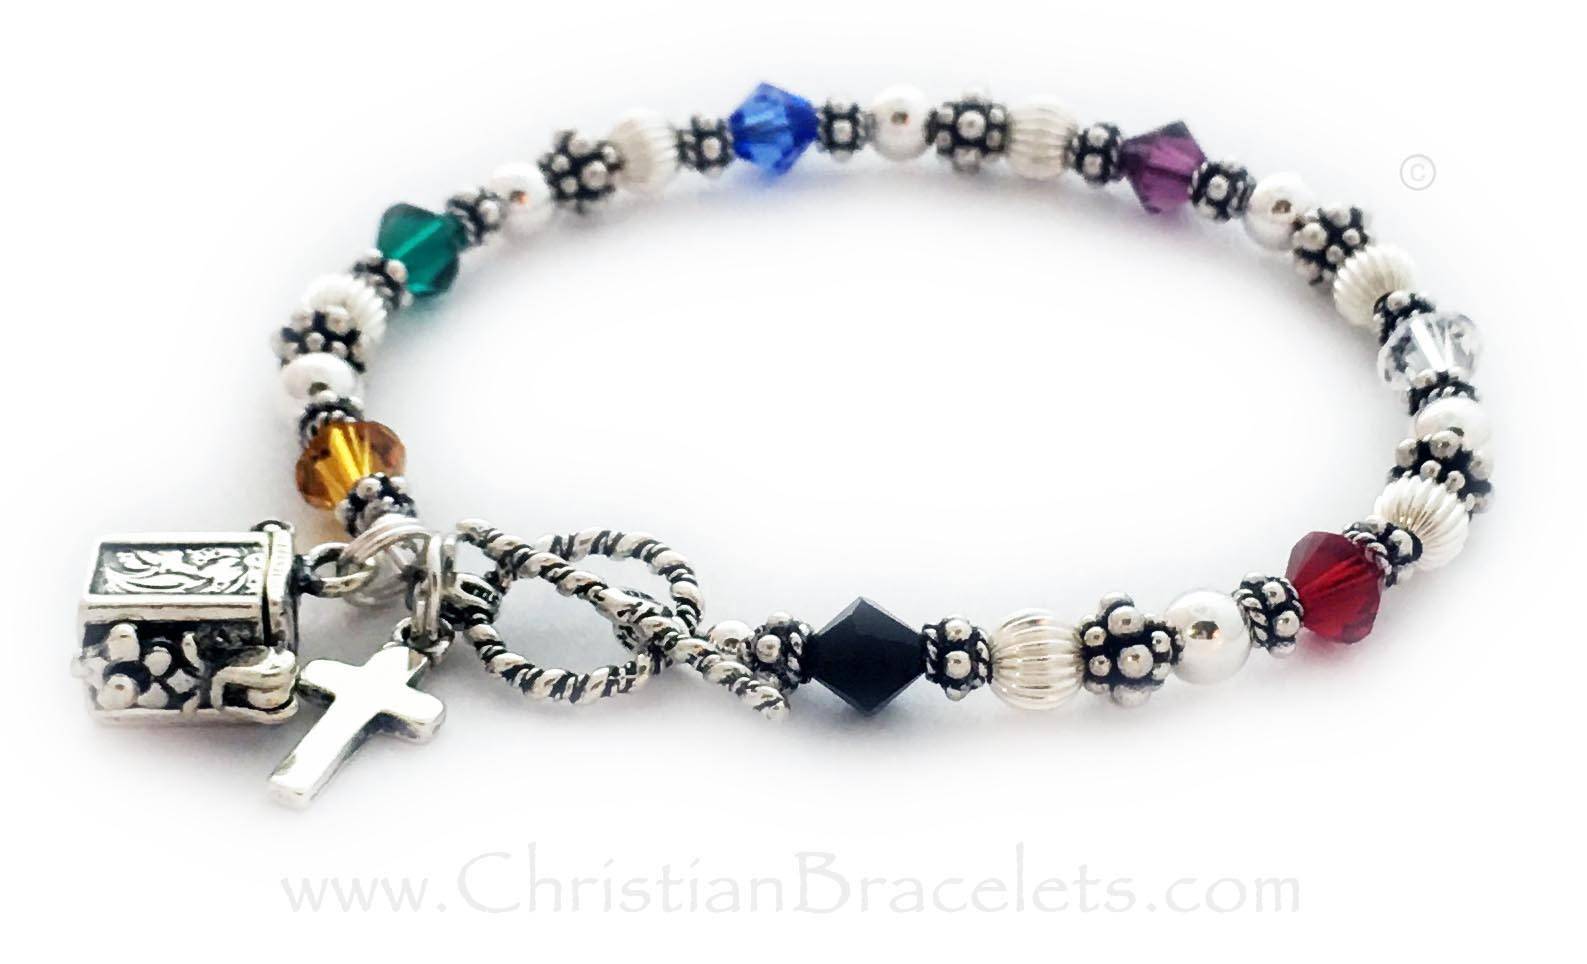 Bali Bicone Salvation Bracelet with a Cross Charm.CB-Salvation-5-Sterling-Silver*Shown with 1 add-on charm: Prayer Box Charm*